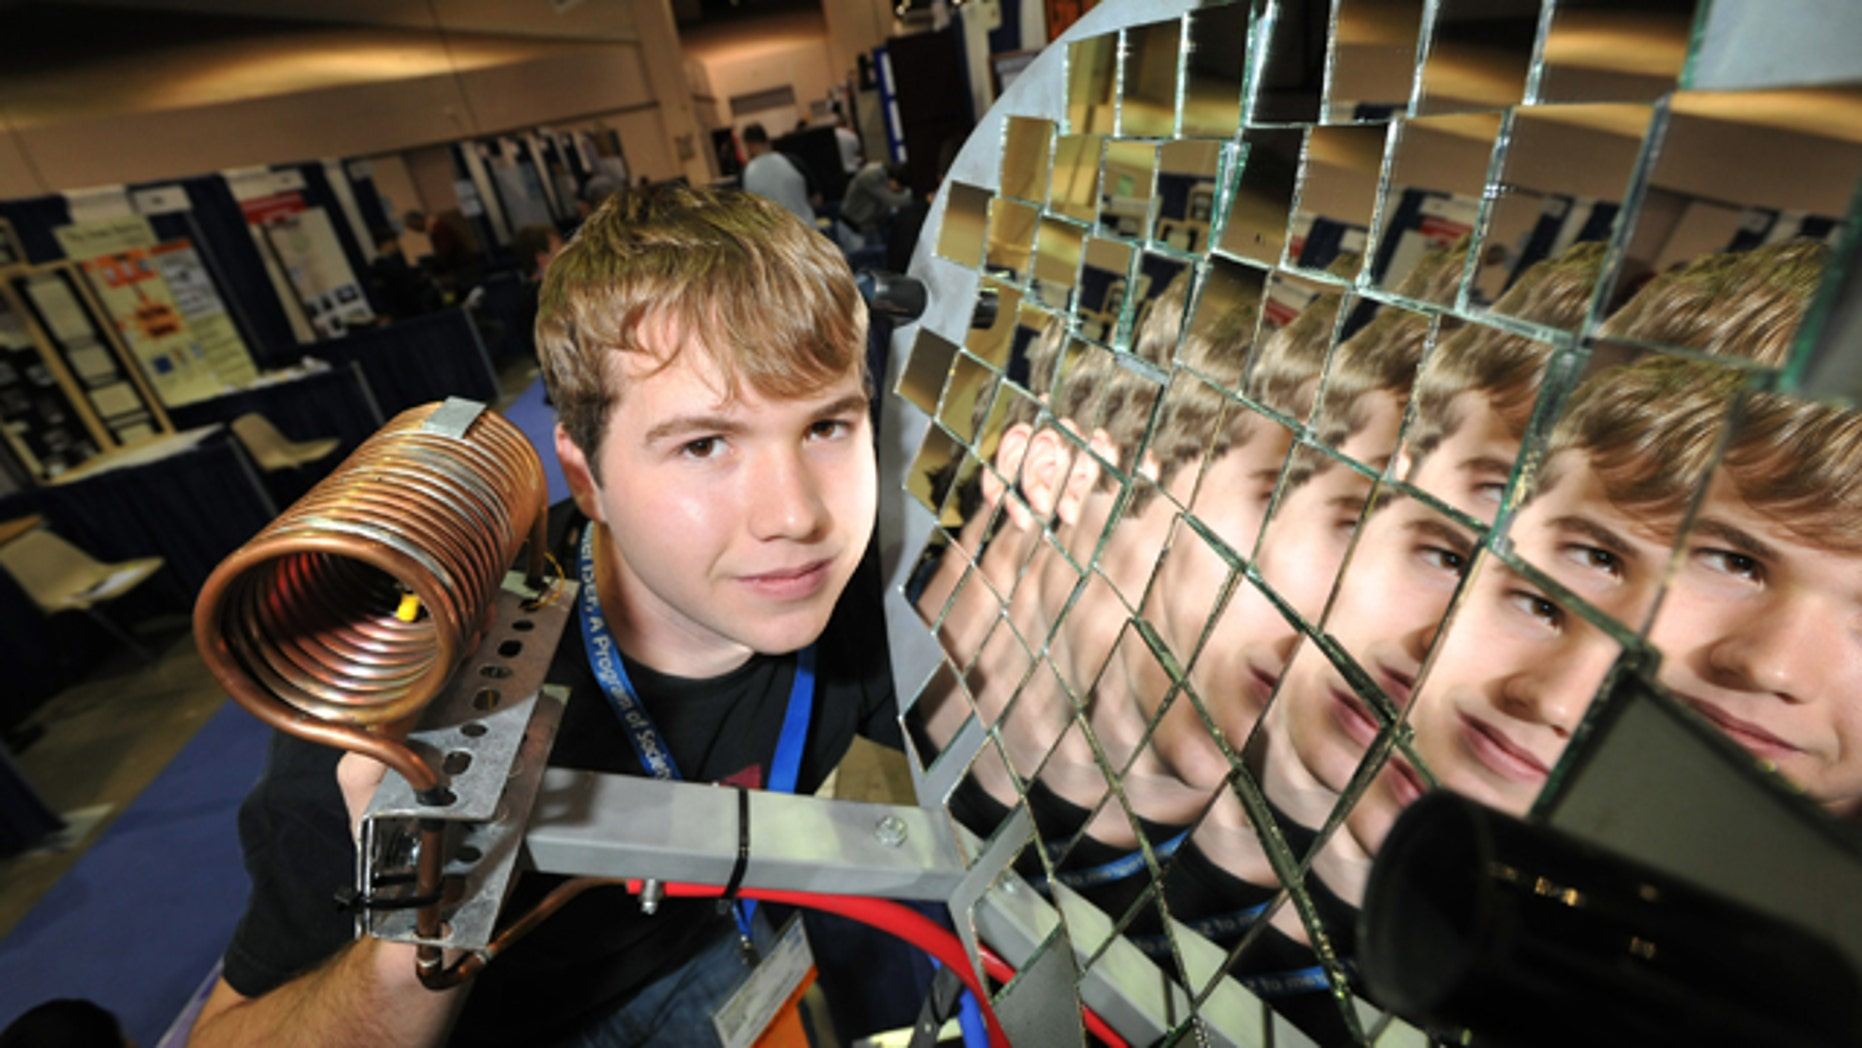 May 16, 2011: Seth Fisher, 16, from Bernville, Pa., demonstrates his solar heat concentrator at the Intel International Science and Engineering Fair, the world's largest pre-college science competition, in Reno, Nev.